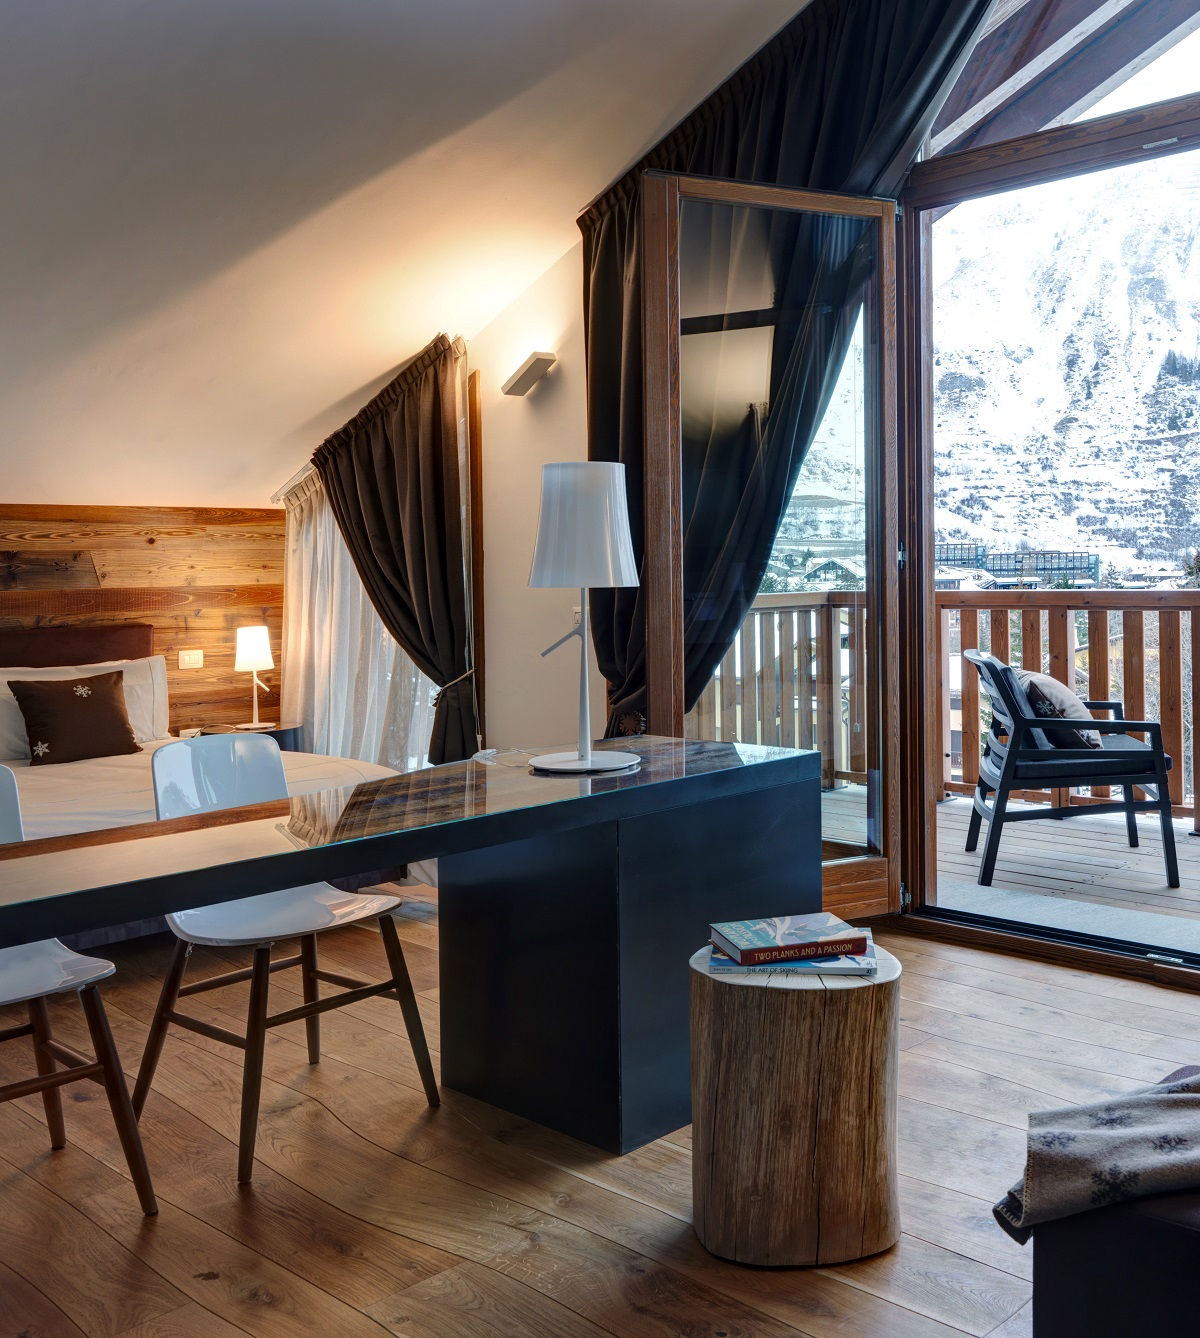 A Vacation Meant For Staying In At The Hotel Nira Montana